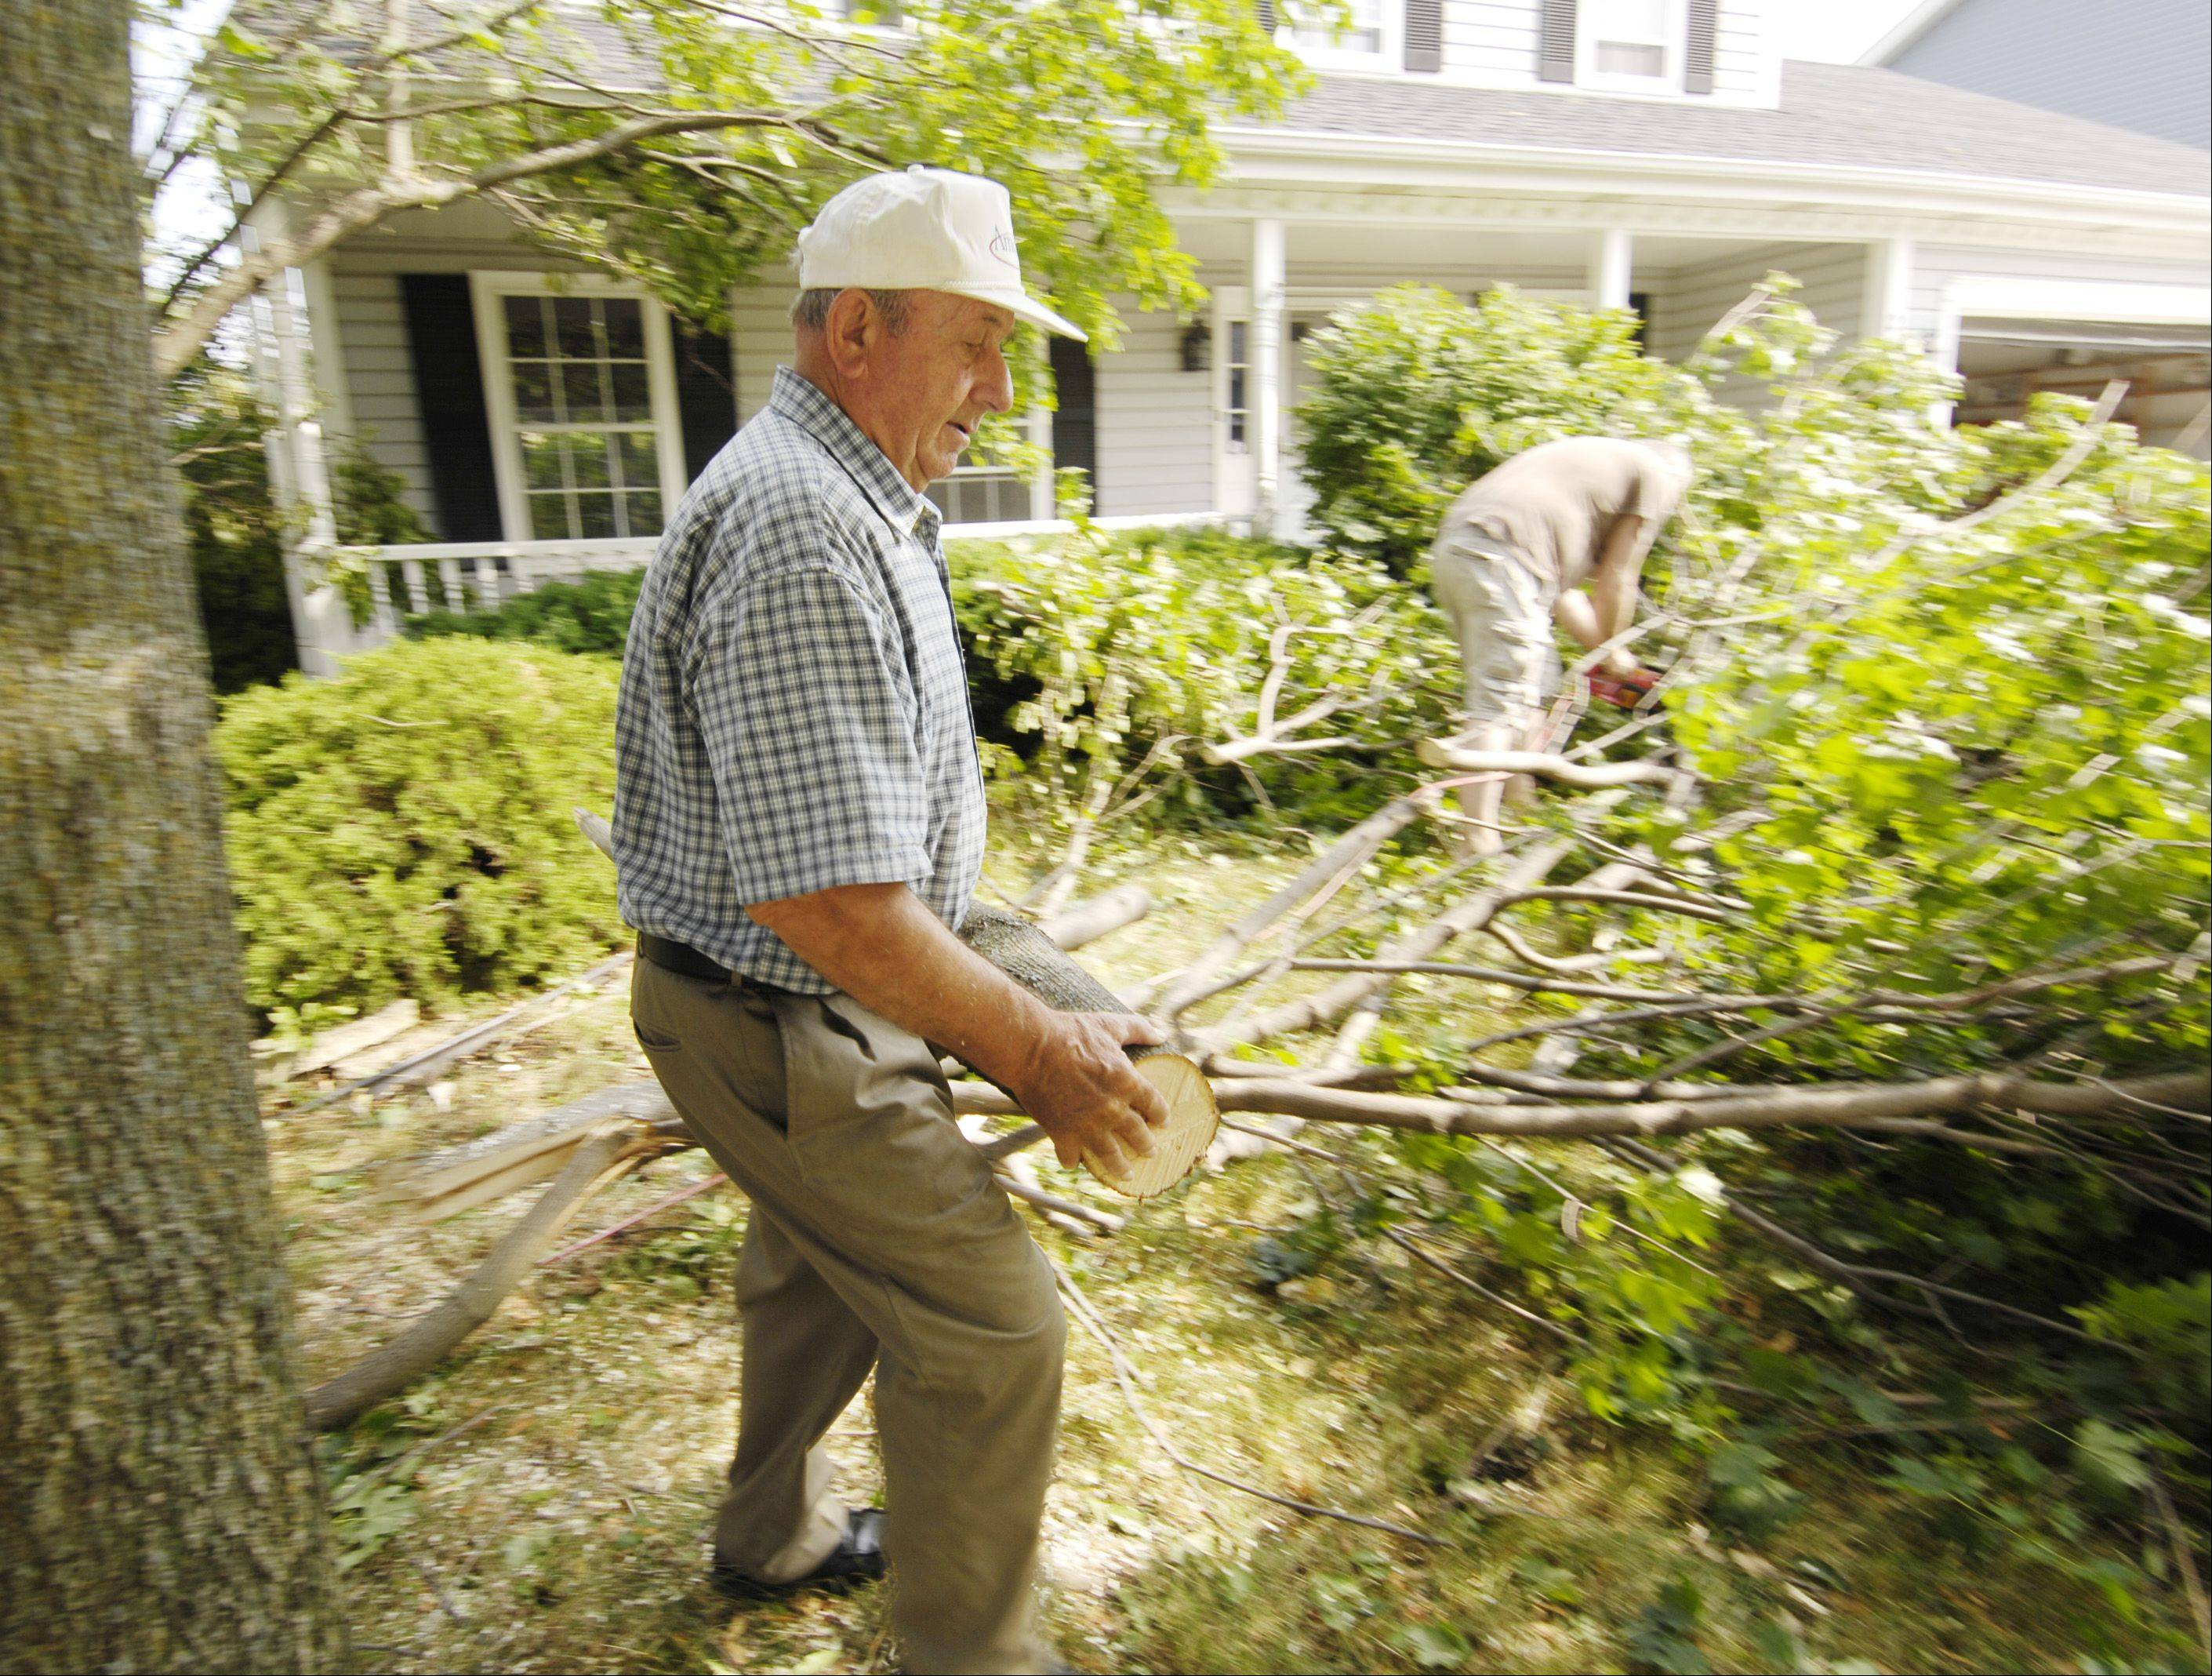 Mike Povkh and Ihor Kopytko clean up a yard in Winfield, Monday morning after Sunday storm downed trees.